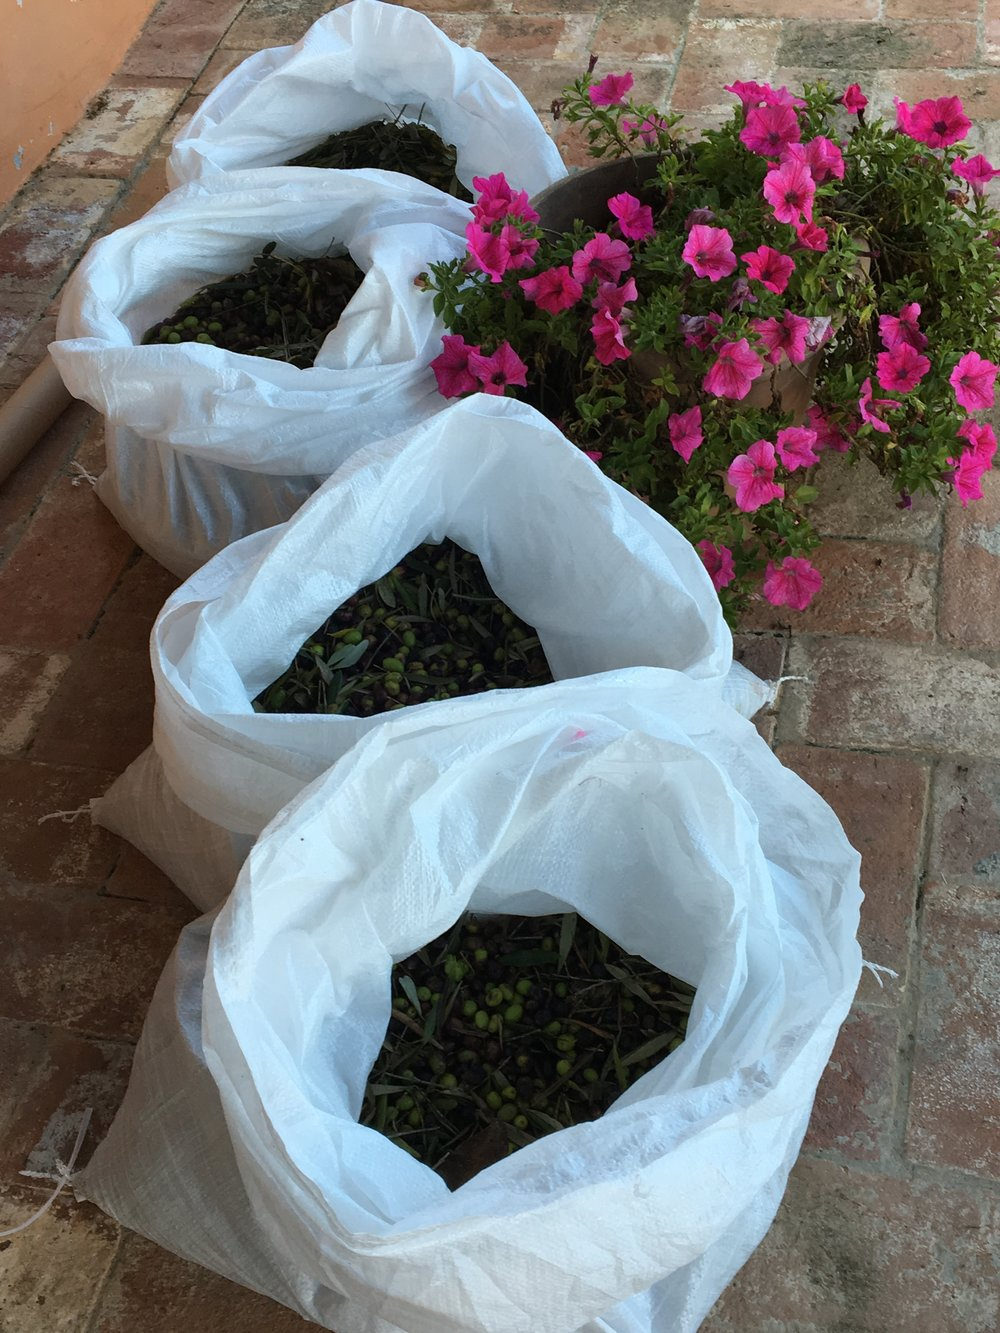 Sacks of precious olives ready for pressing